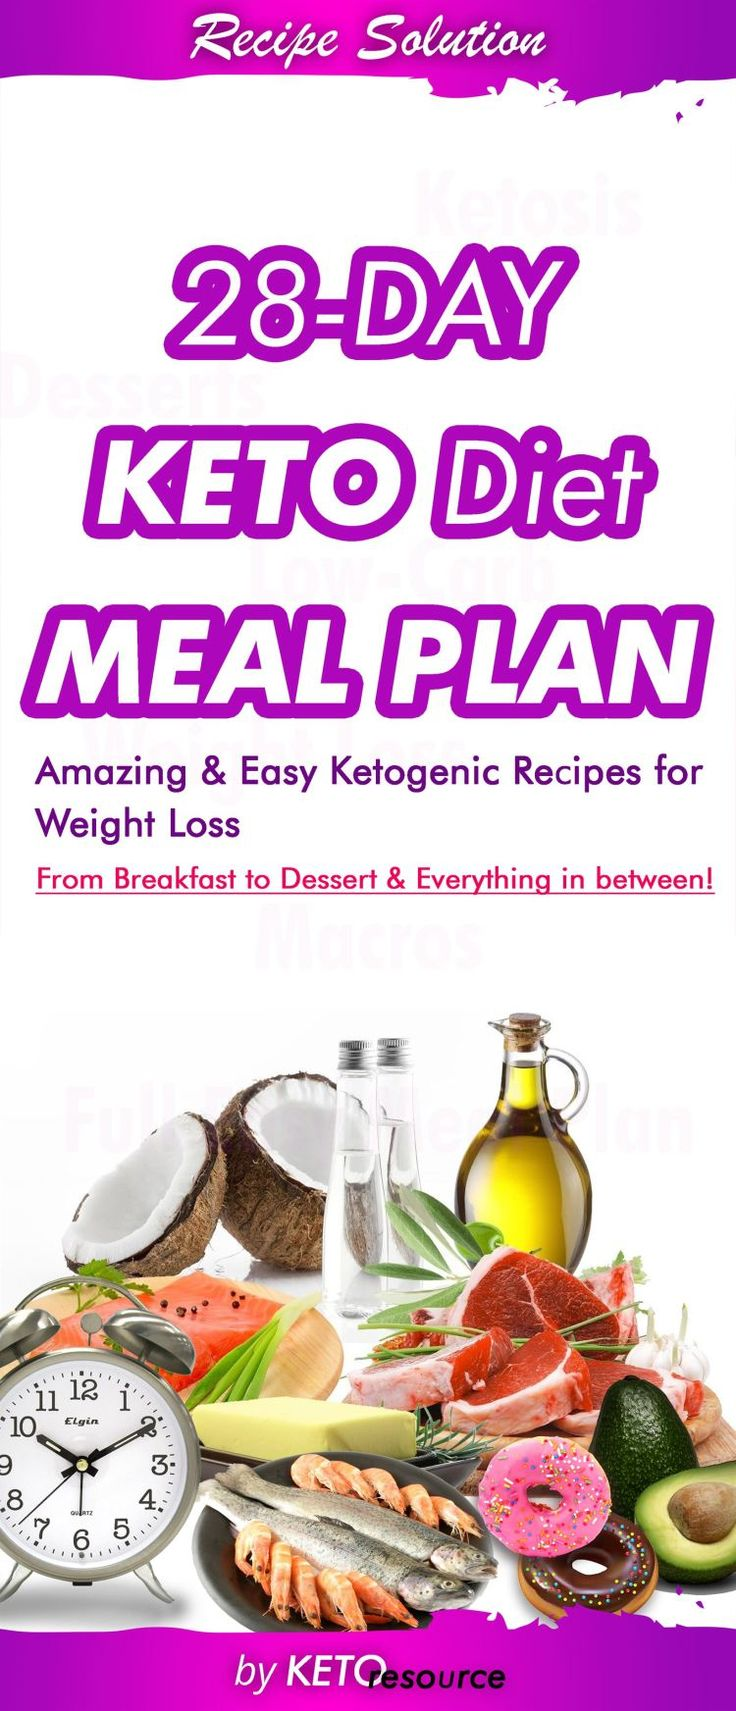 28 Day Keto Diet Challenge is a well-crafted plan to get you through the first month.You'll be able to start strong and finish strong, Possibly losing 5-10 lbs in the first week alone.This doesn't have to stay in your imagination… you can make it … #Ketorecipes #EatingonKeto #ketosis #Macros #ketolunch #Intermittent #fasting #ketodesserts #avocadorecipes #ketogenicdiet #Healthy #healthyrecipes #diet #food #smartpoints  #weightwatchers #ketodiet #ketosisrecipes #ketogenic #ketogenicdiet